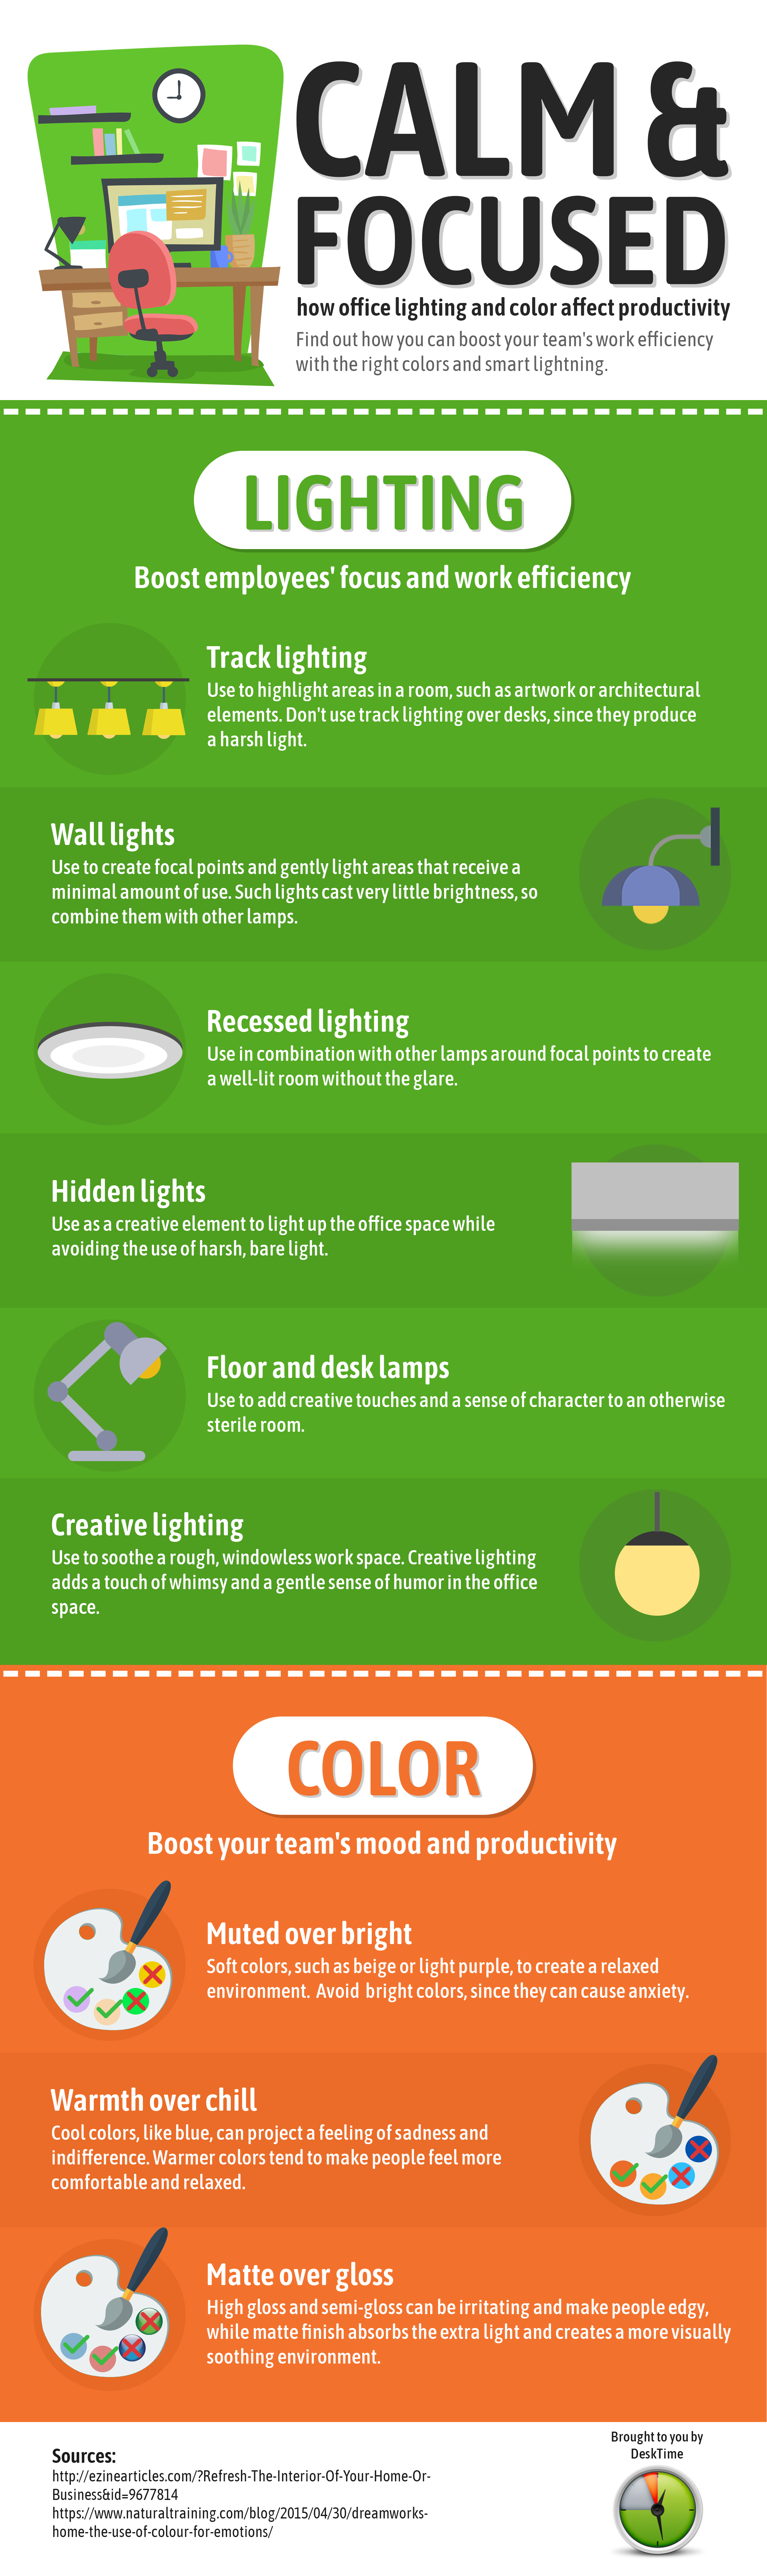 how lightning affects productivity